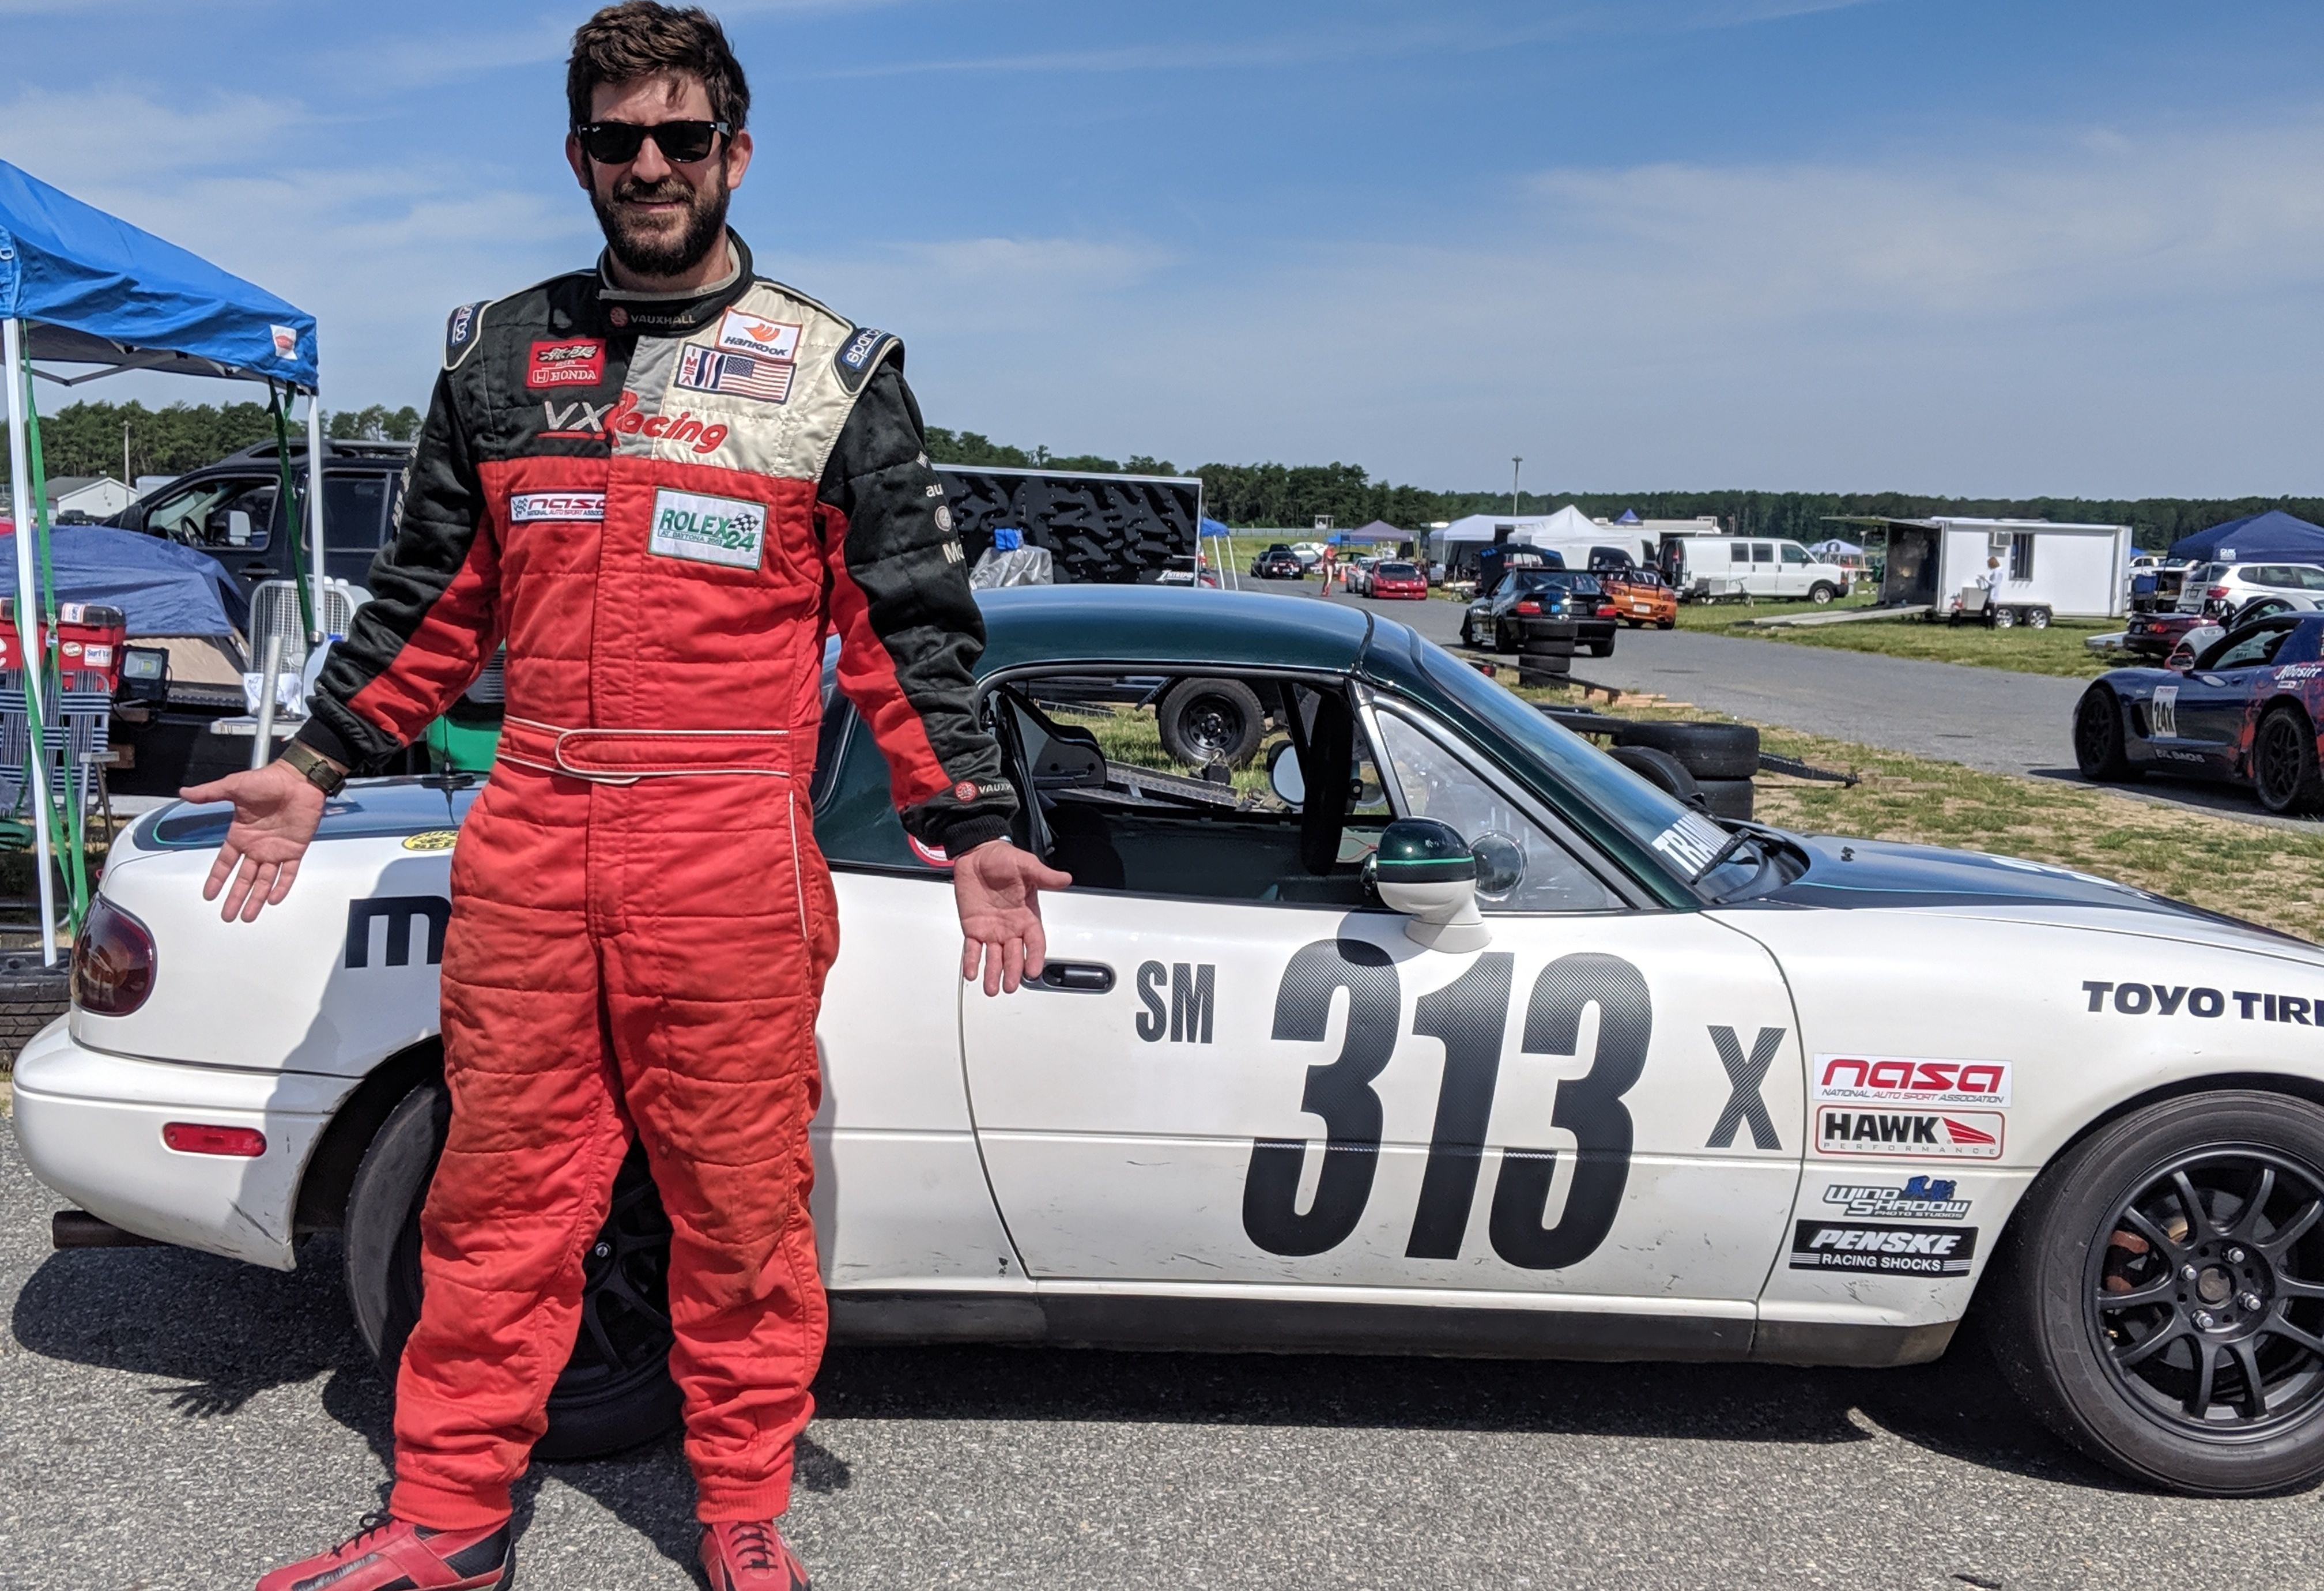 Race Driver in firesuit standing before Spec Miata Racecar